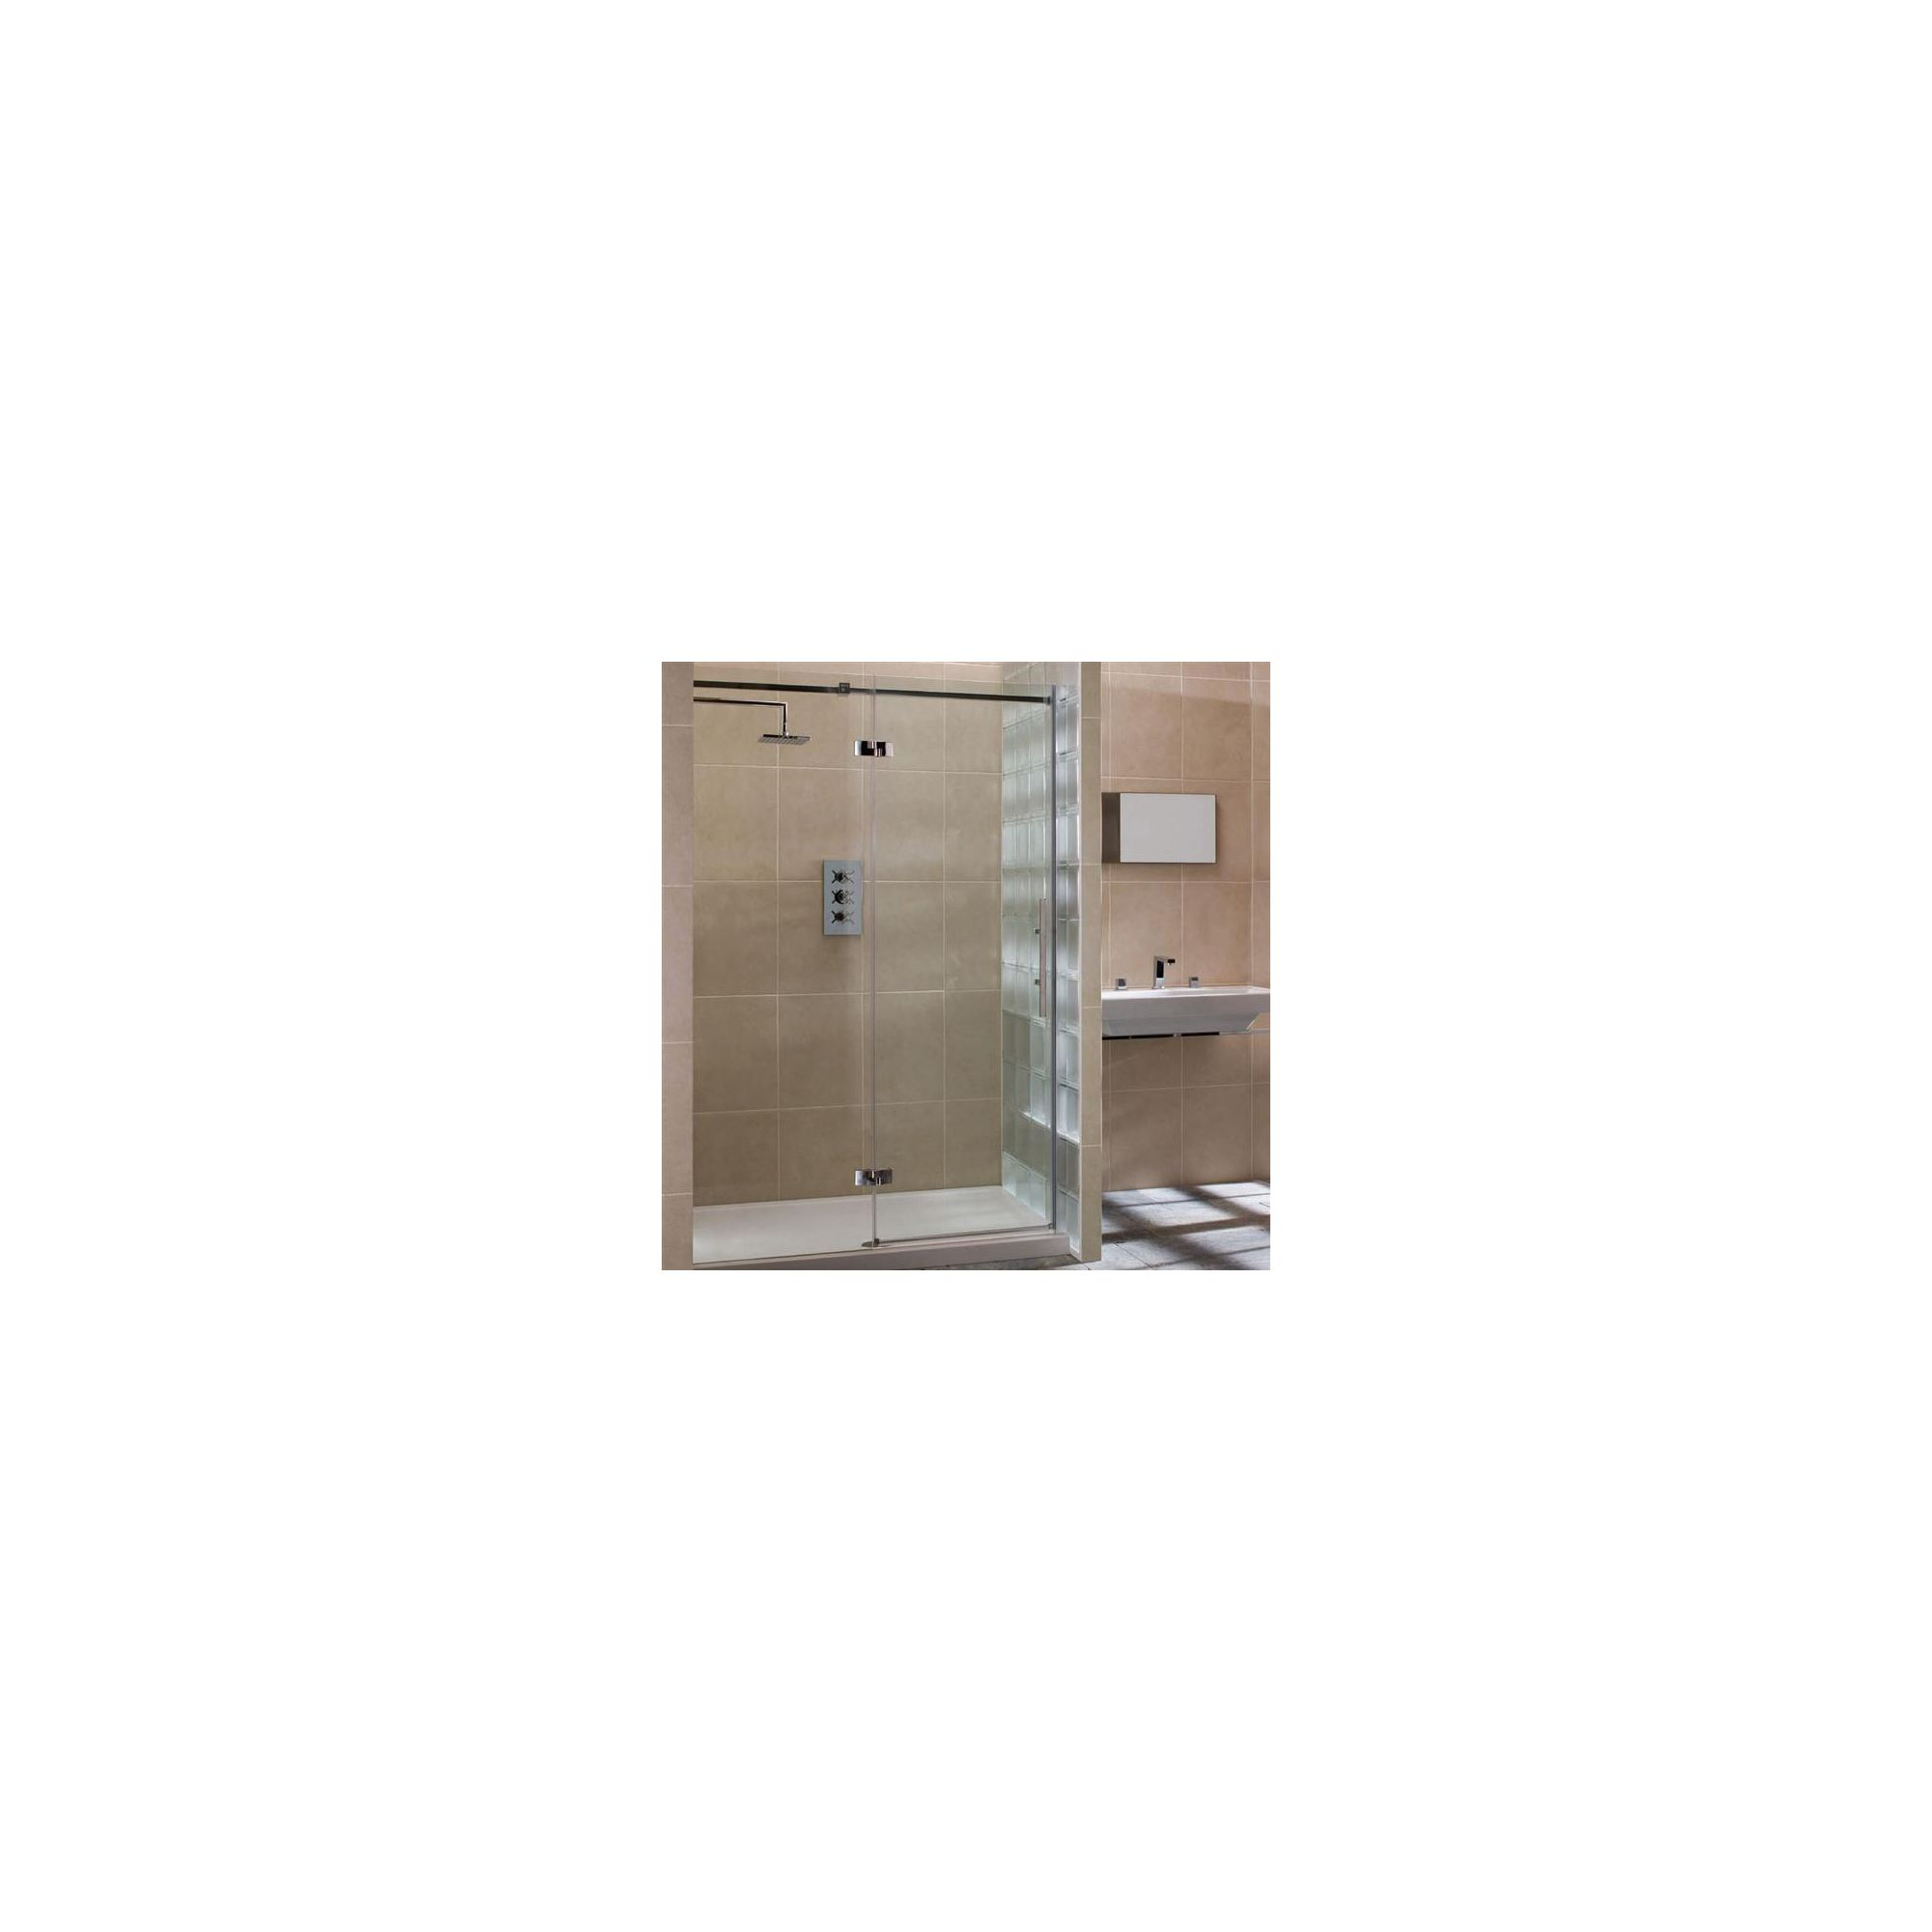 Merlyn Vivid Nine Hinged Door Alcove Shower Enclosure with Inline Panel, 1600mm x 800mm, Left Handed, Low Profile Tray, 8mm Glass at Tesco Direct